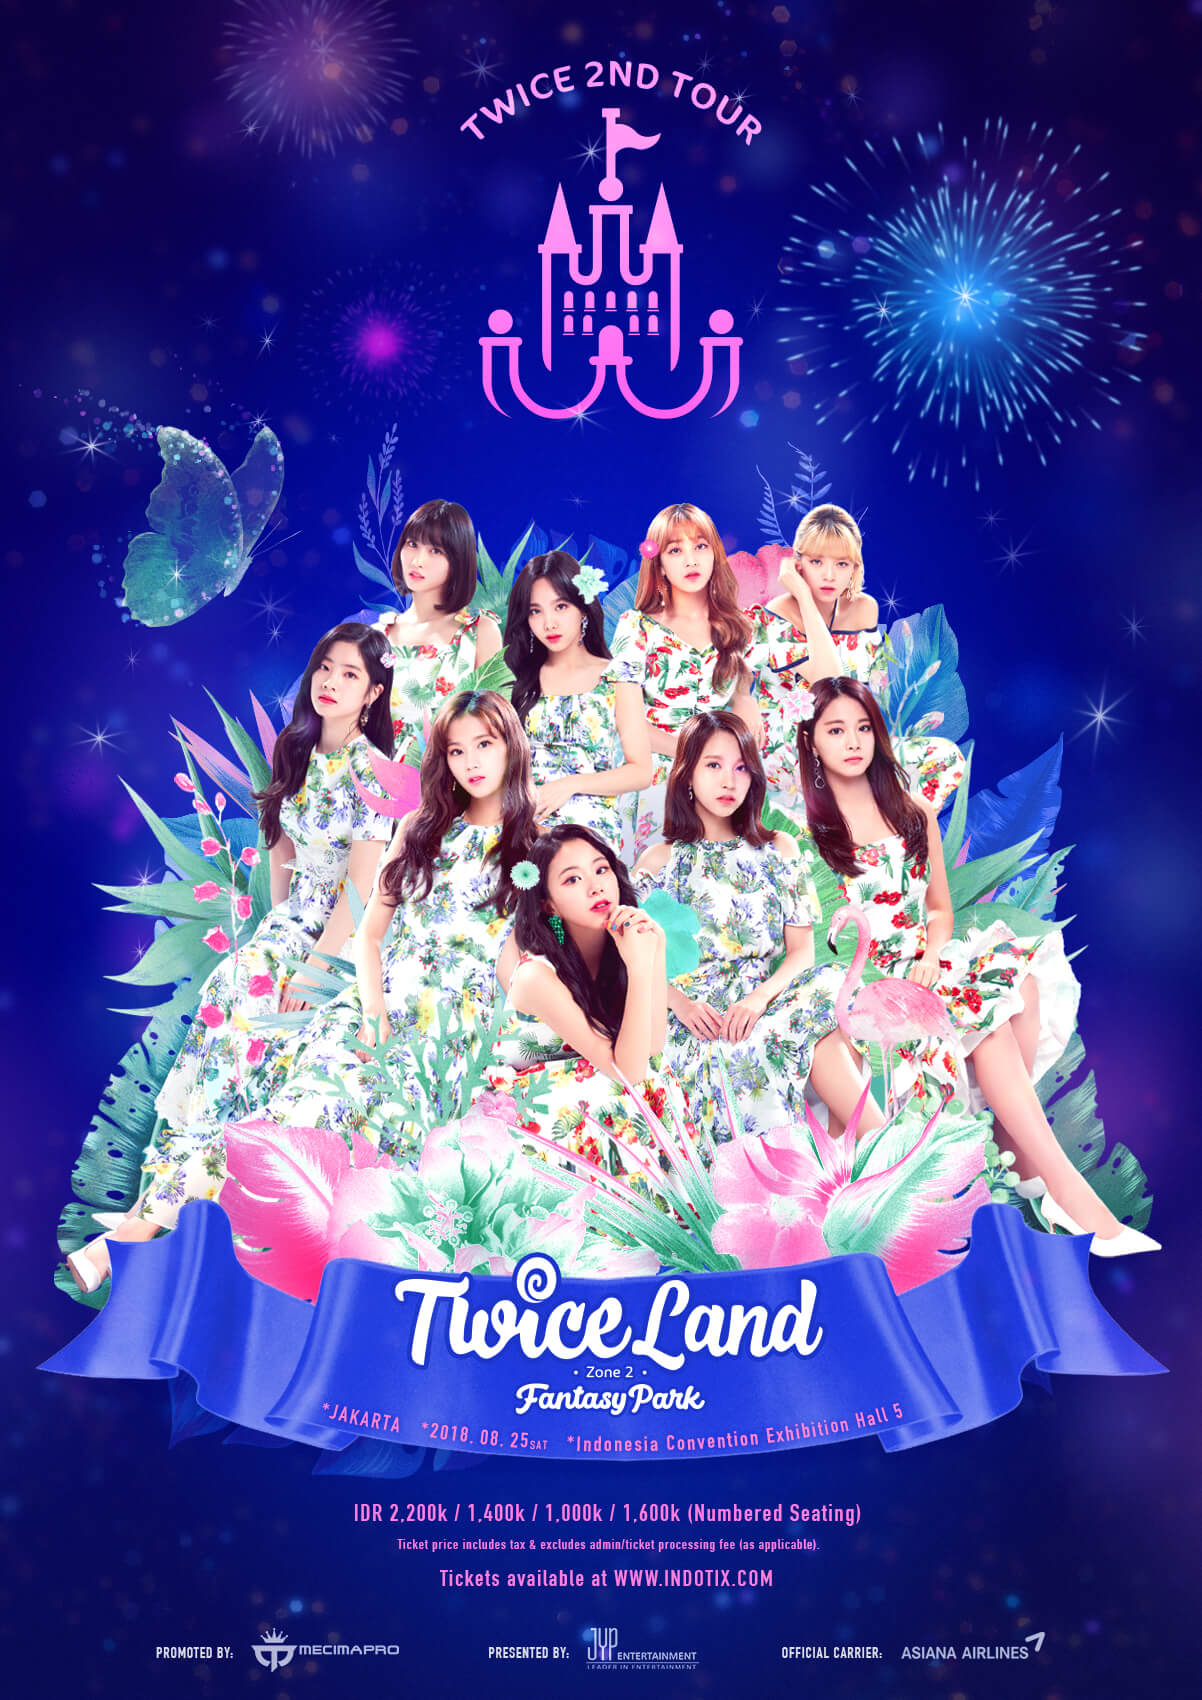 GIVEAWAY!! TIKET NONTON KONSER TWICE PERSEMBAHAN ASIANA AIRLINES